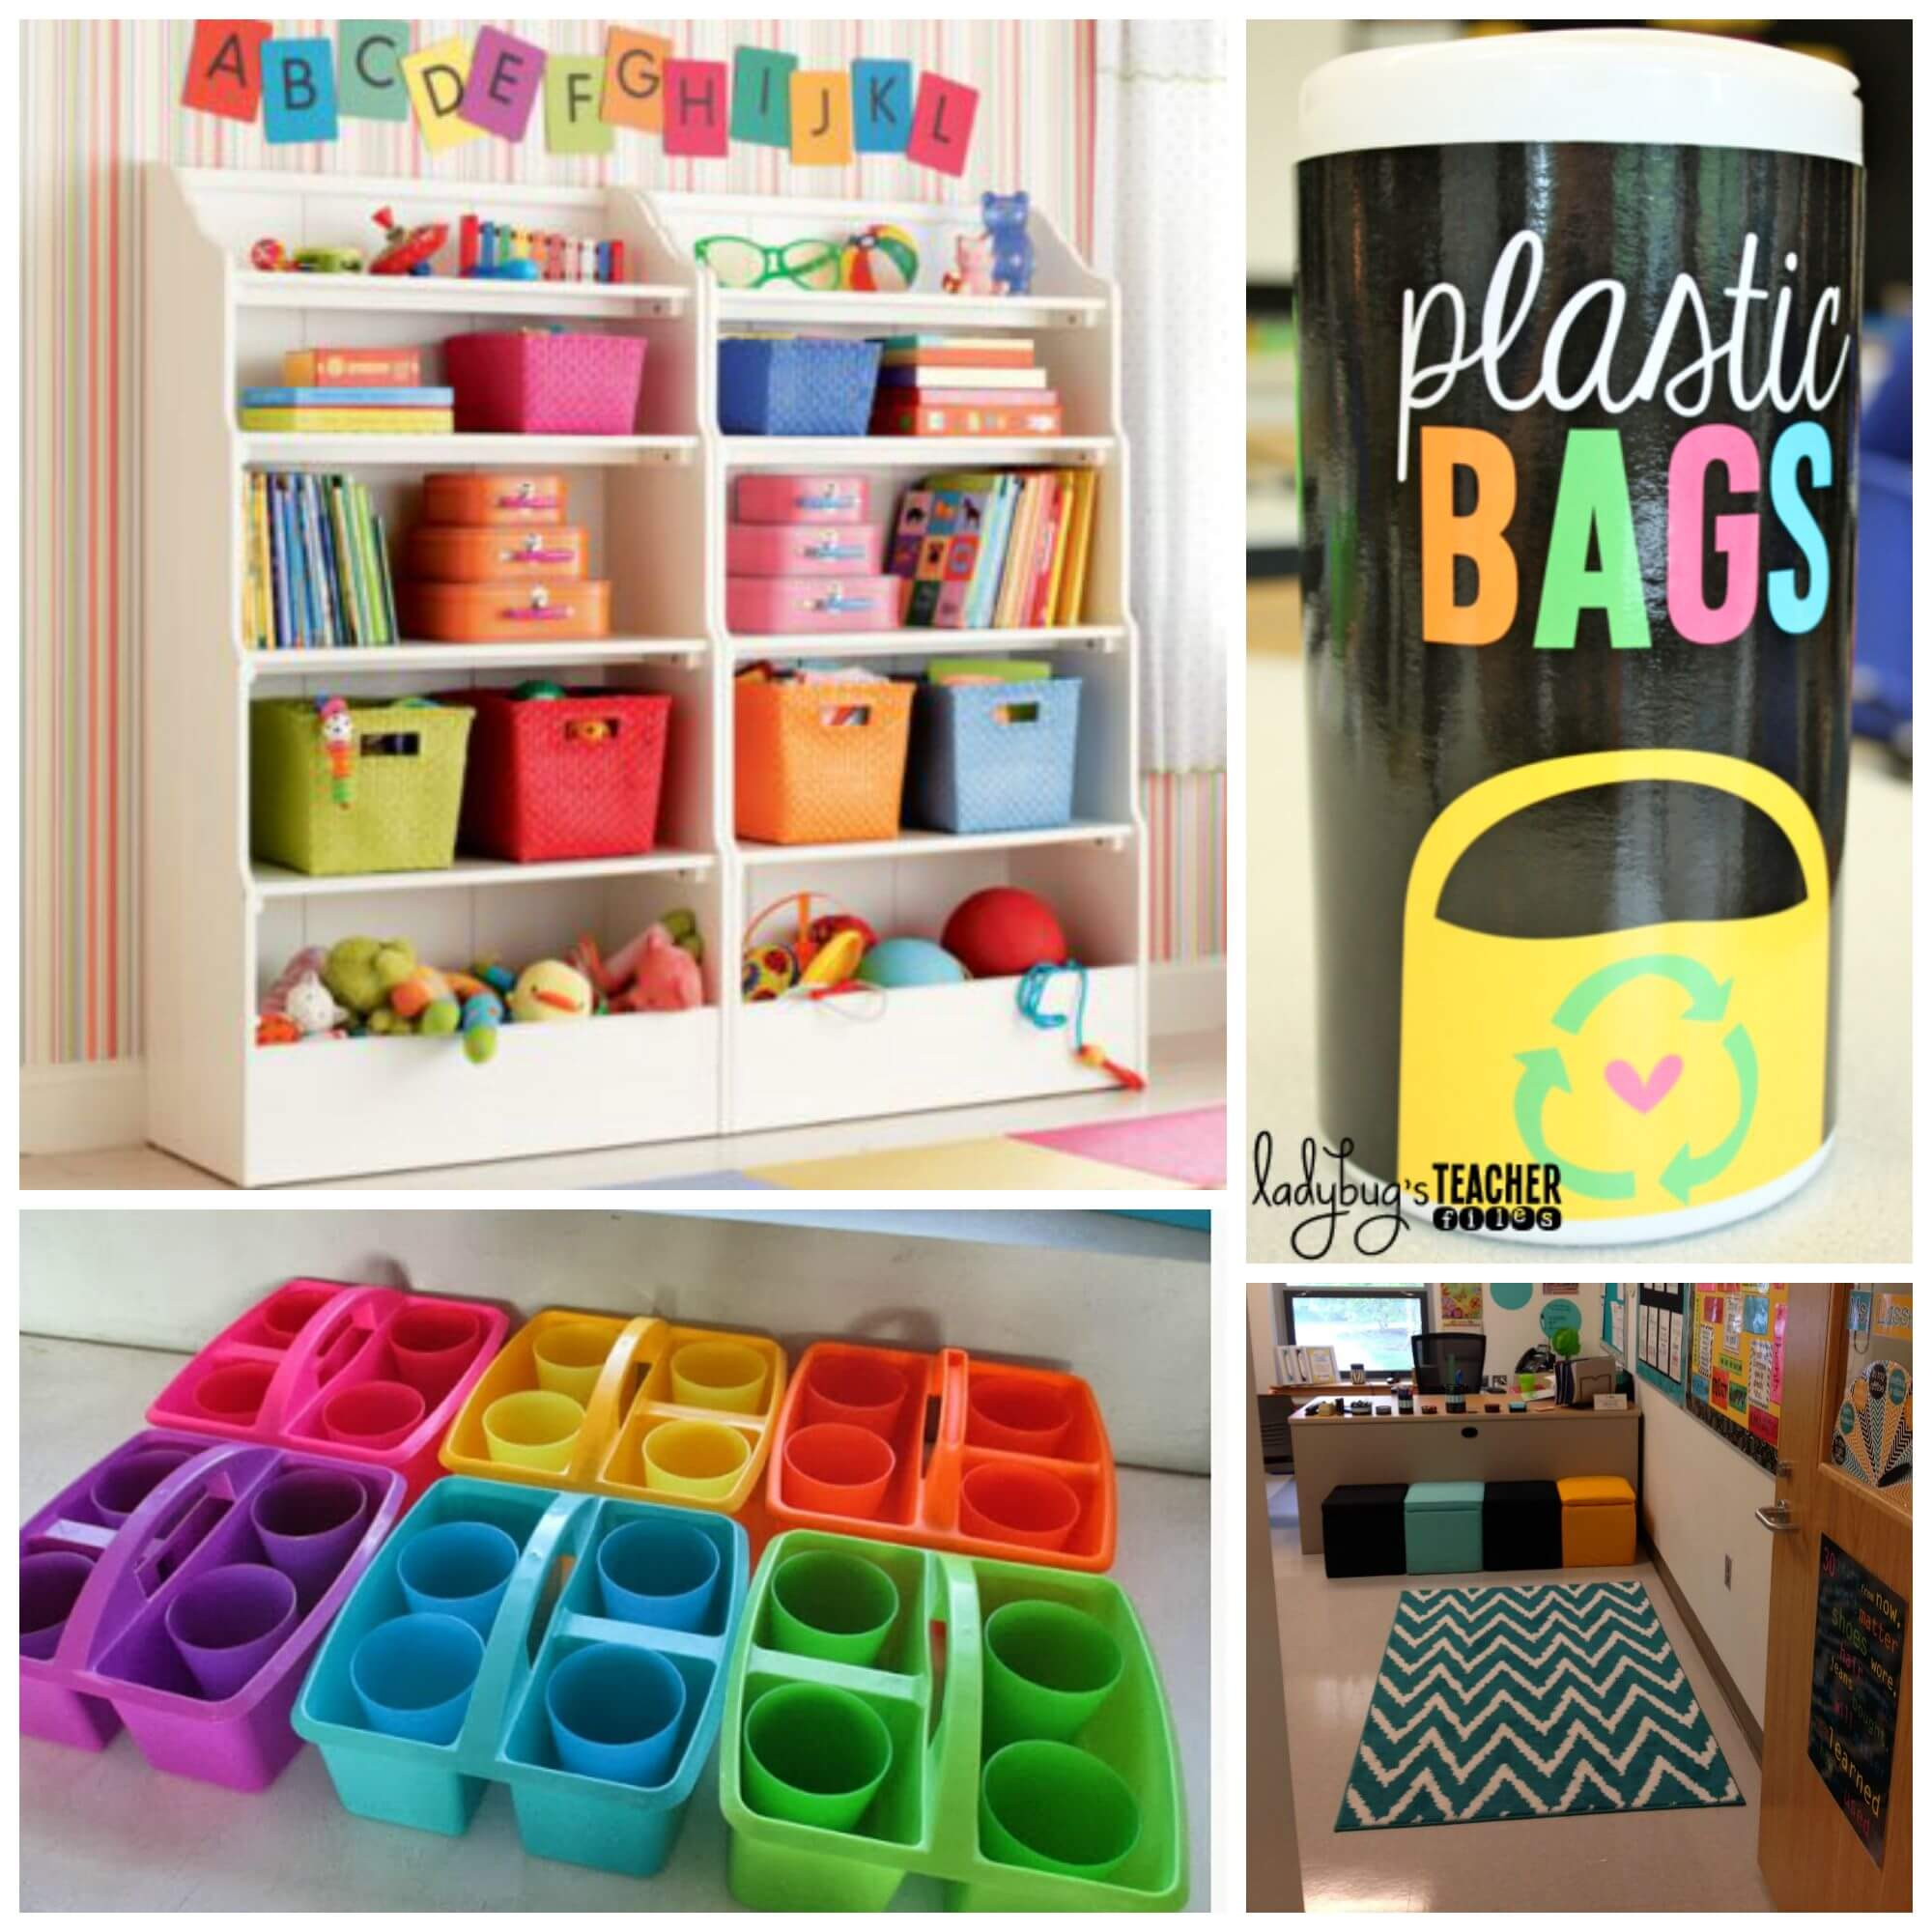 Decor Of Classroom ~ Inspiring classroom decoration ideas playdough to plato